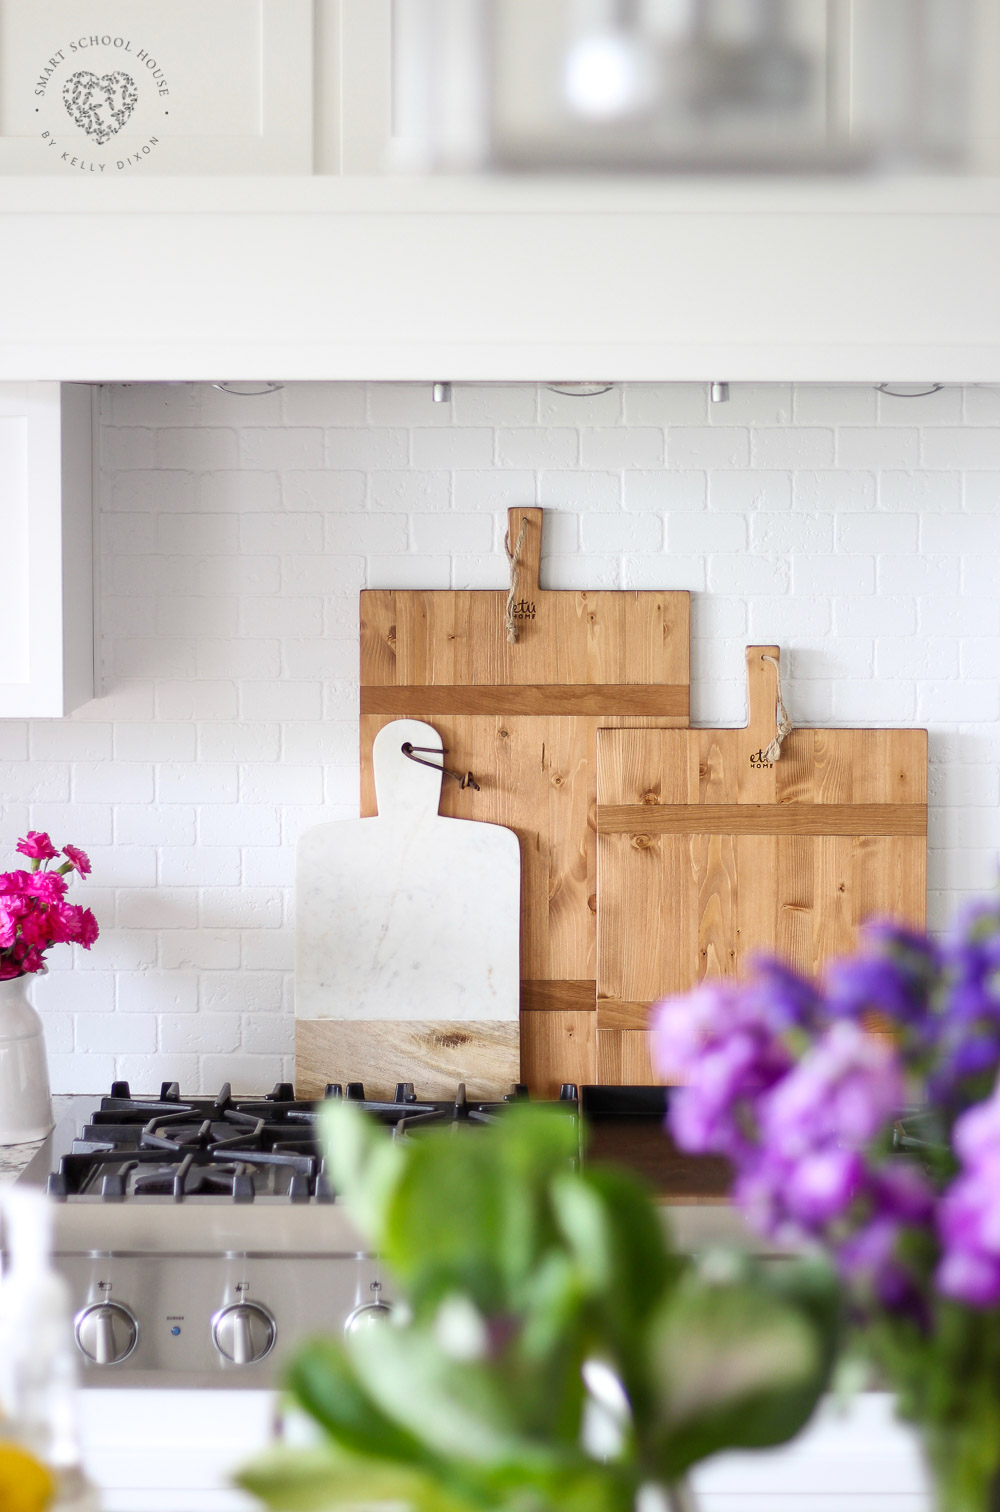 Decorating with Wood Cutting Boards. #cuttingboards #farmhousekitchen #kitchendecor